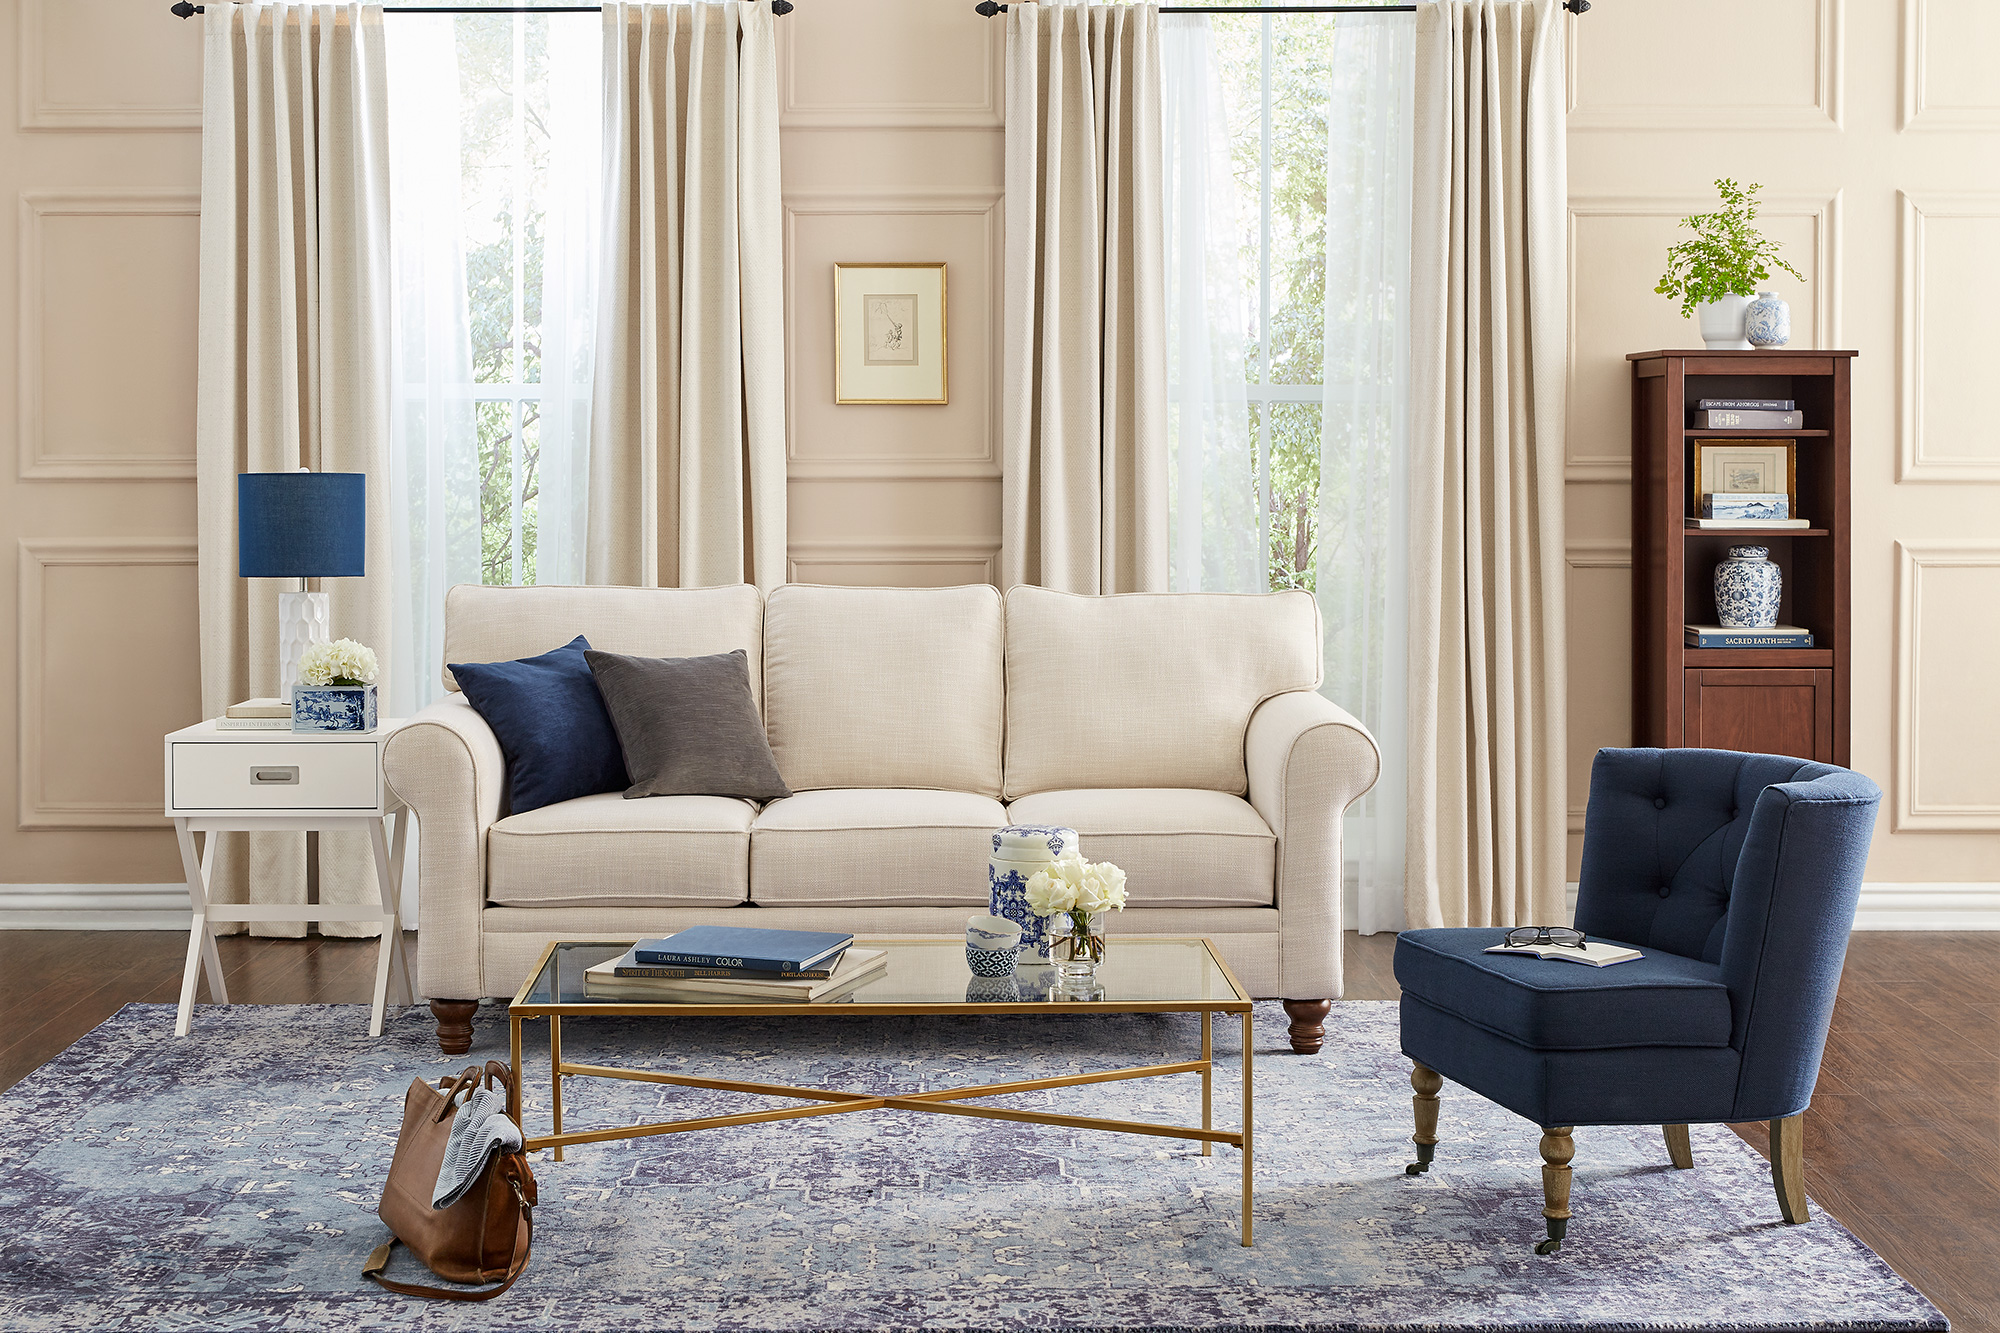 find the best imax xanthia end table ravenna home living bedford jute rope accent launches its own furnishings collection take peek affordable items interior decoration beige